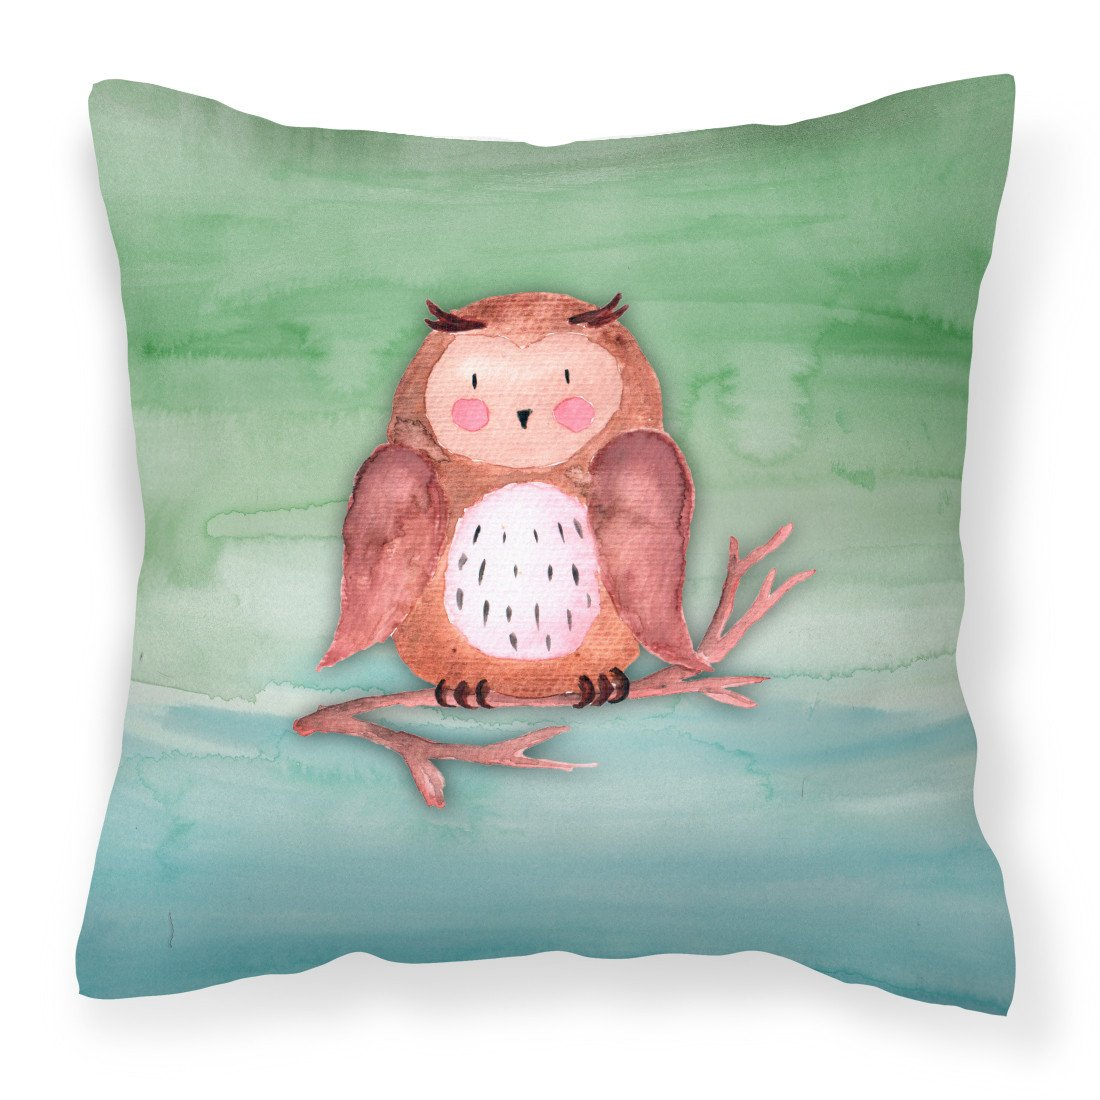 Brown Owl Watercolor Fabric Decorative Pillow BB7443PW1818 by Caroline's Treasures